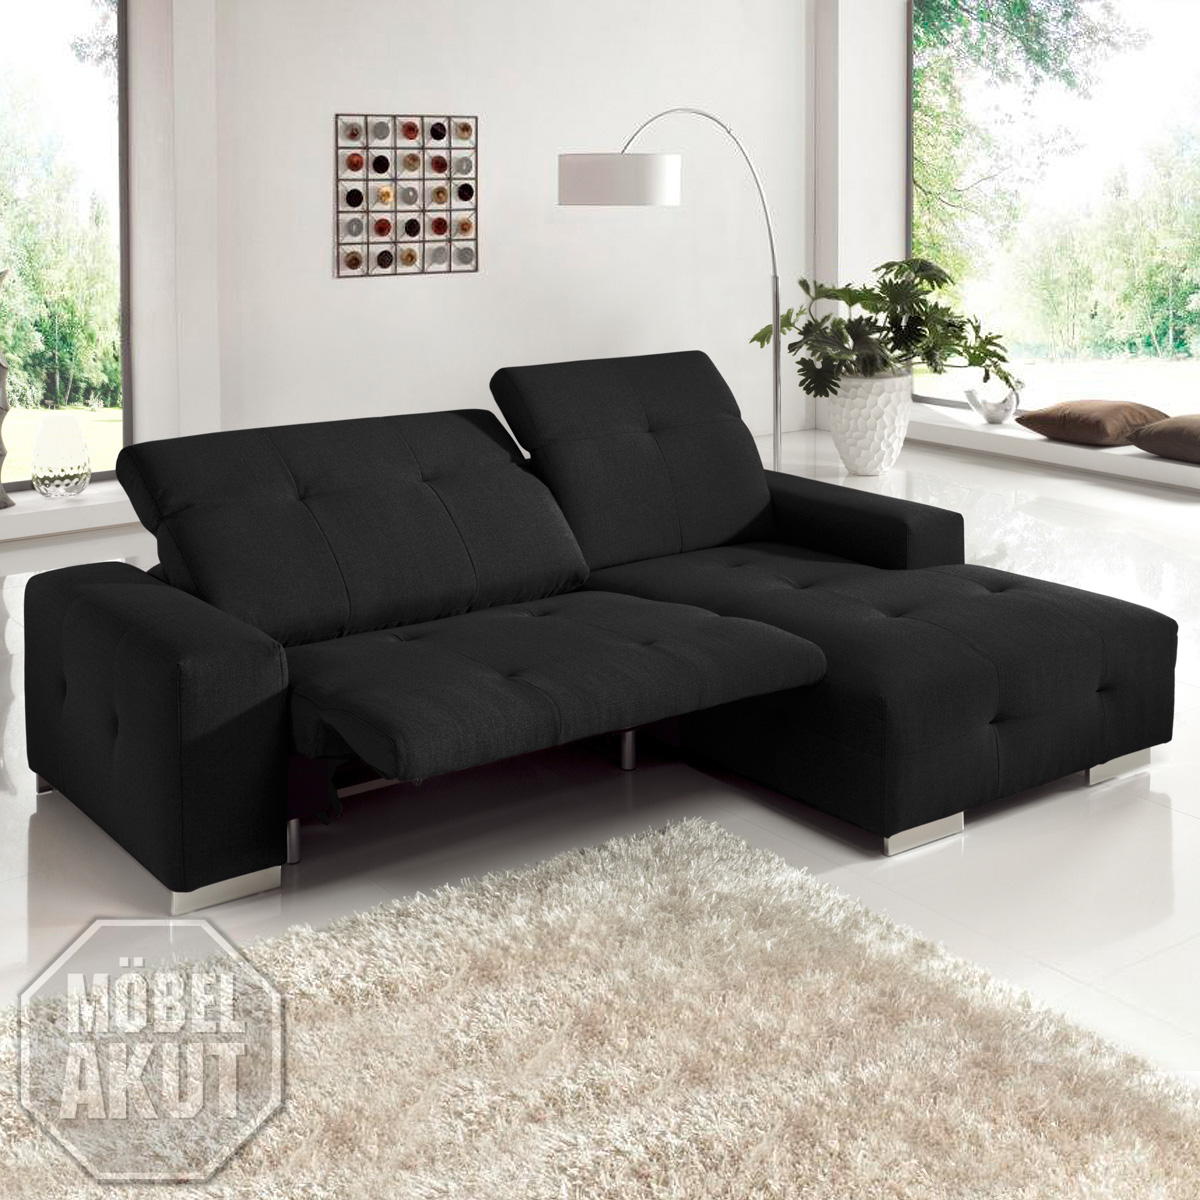 Big Sofa Mit Relaxfunktion Ecksofa Francisco Sofa Lila Mit Elektrischer Relaxfunktion